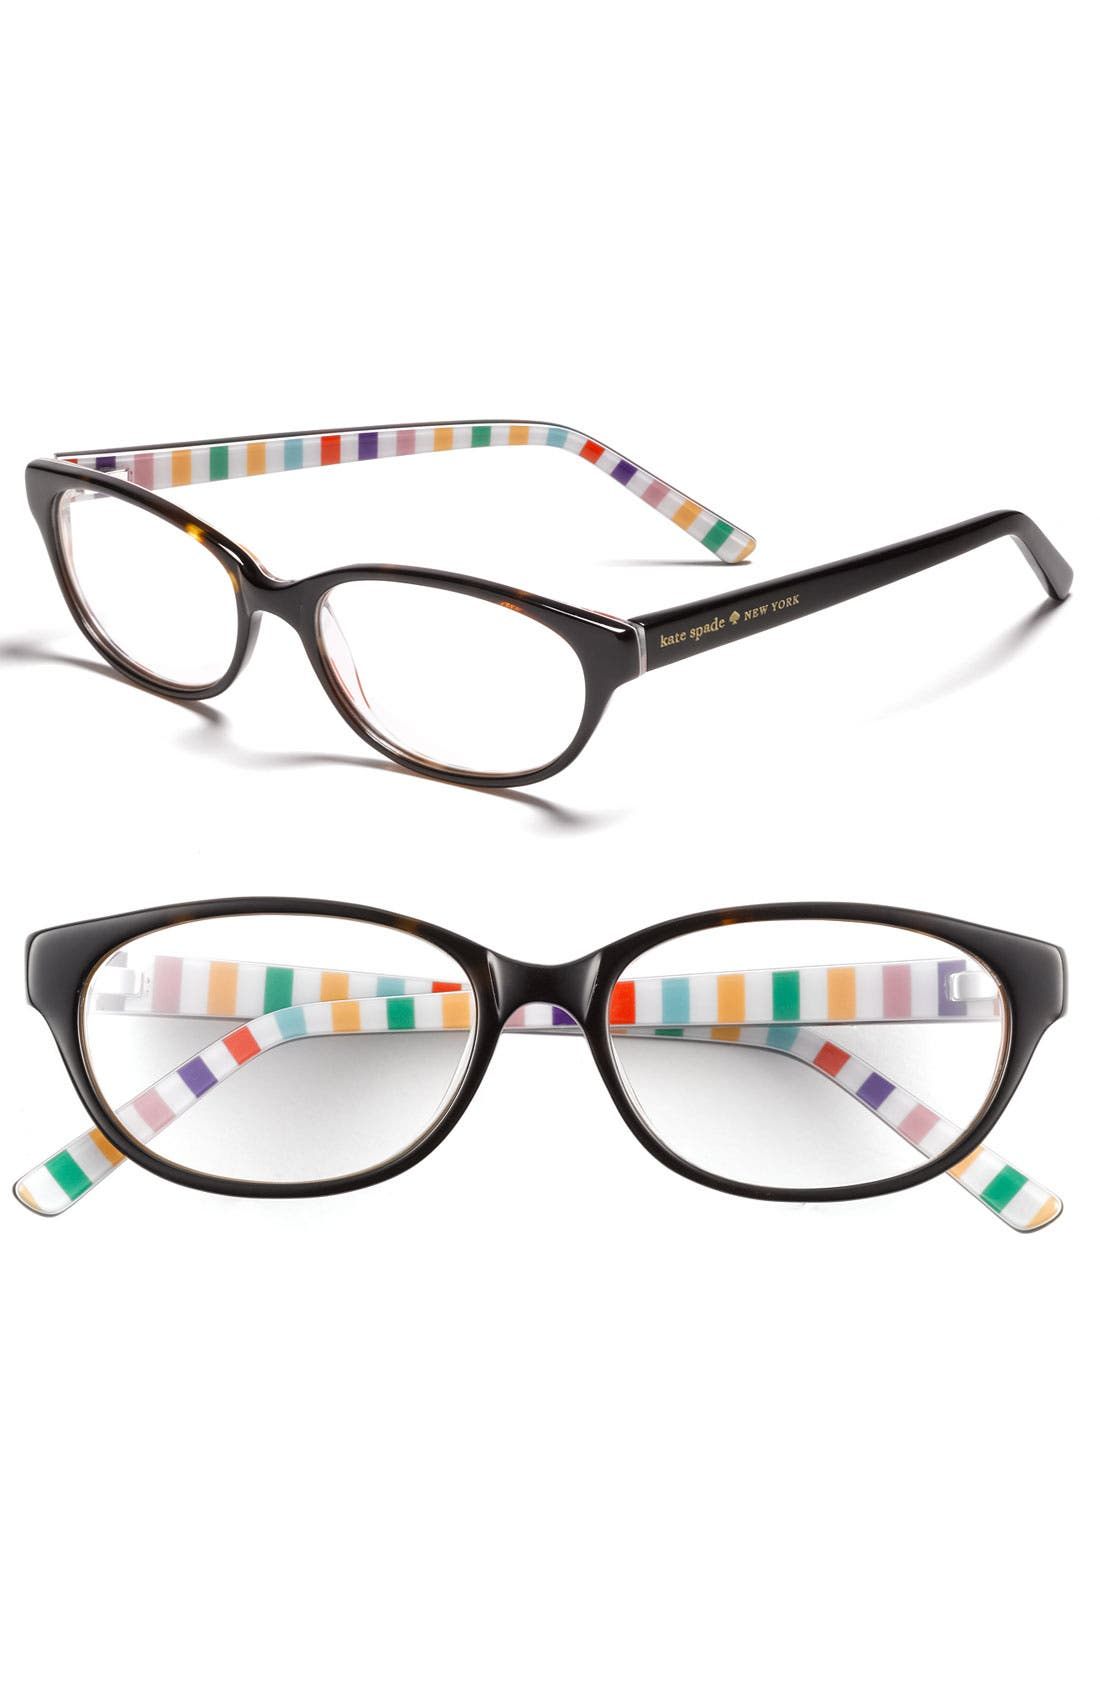 Main Image - kate spade new york 'charity' reading glasses (2 for $88)